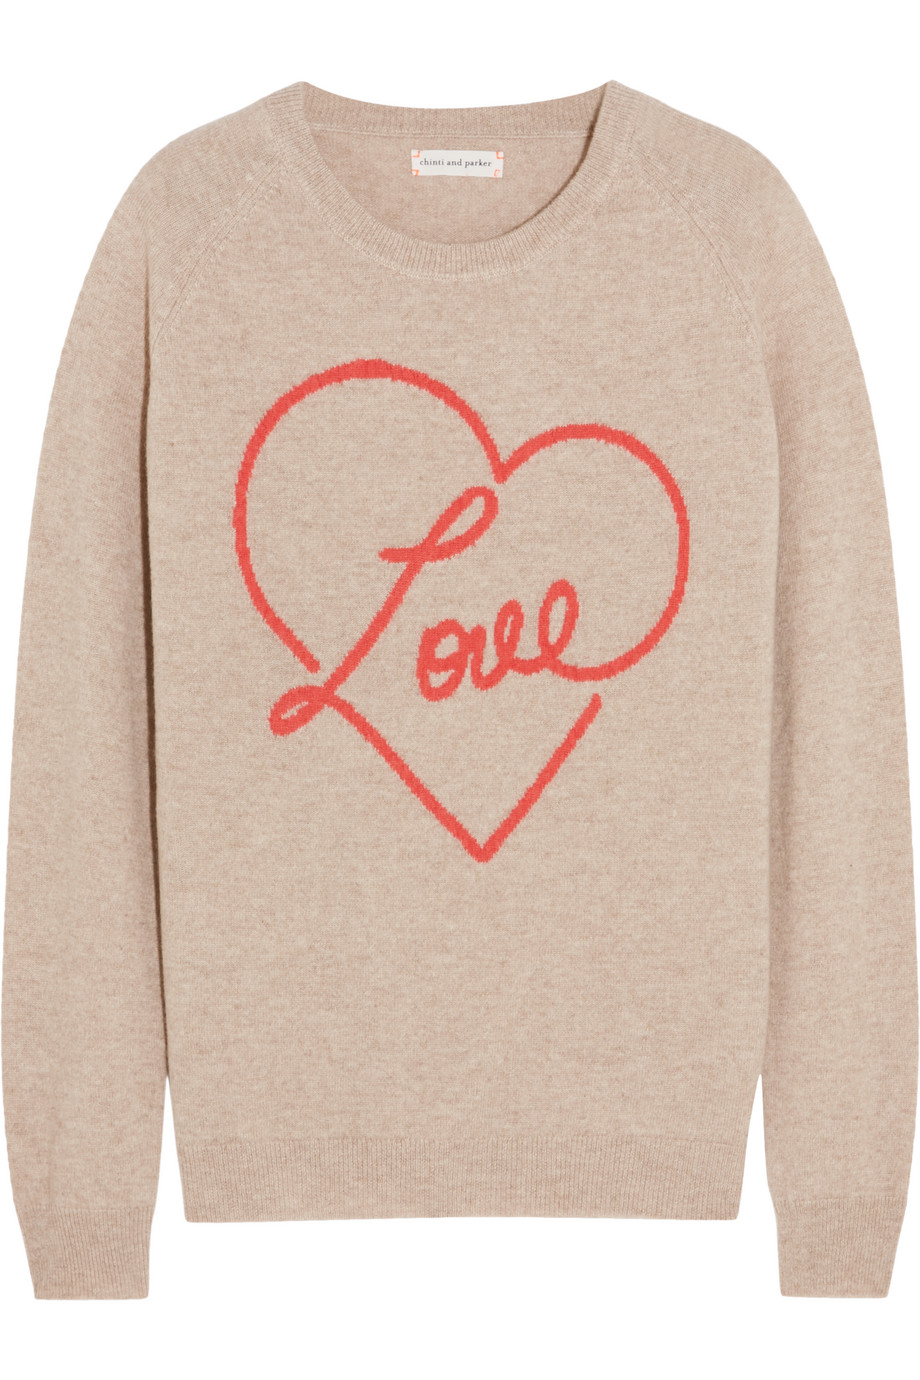 Love Intarsia Cashmere Sweater, Chinti and Parker, Mushroom, Women's